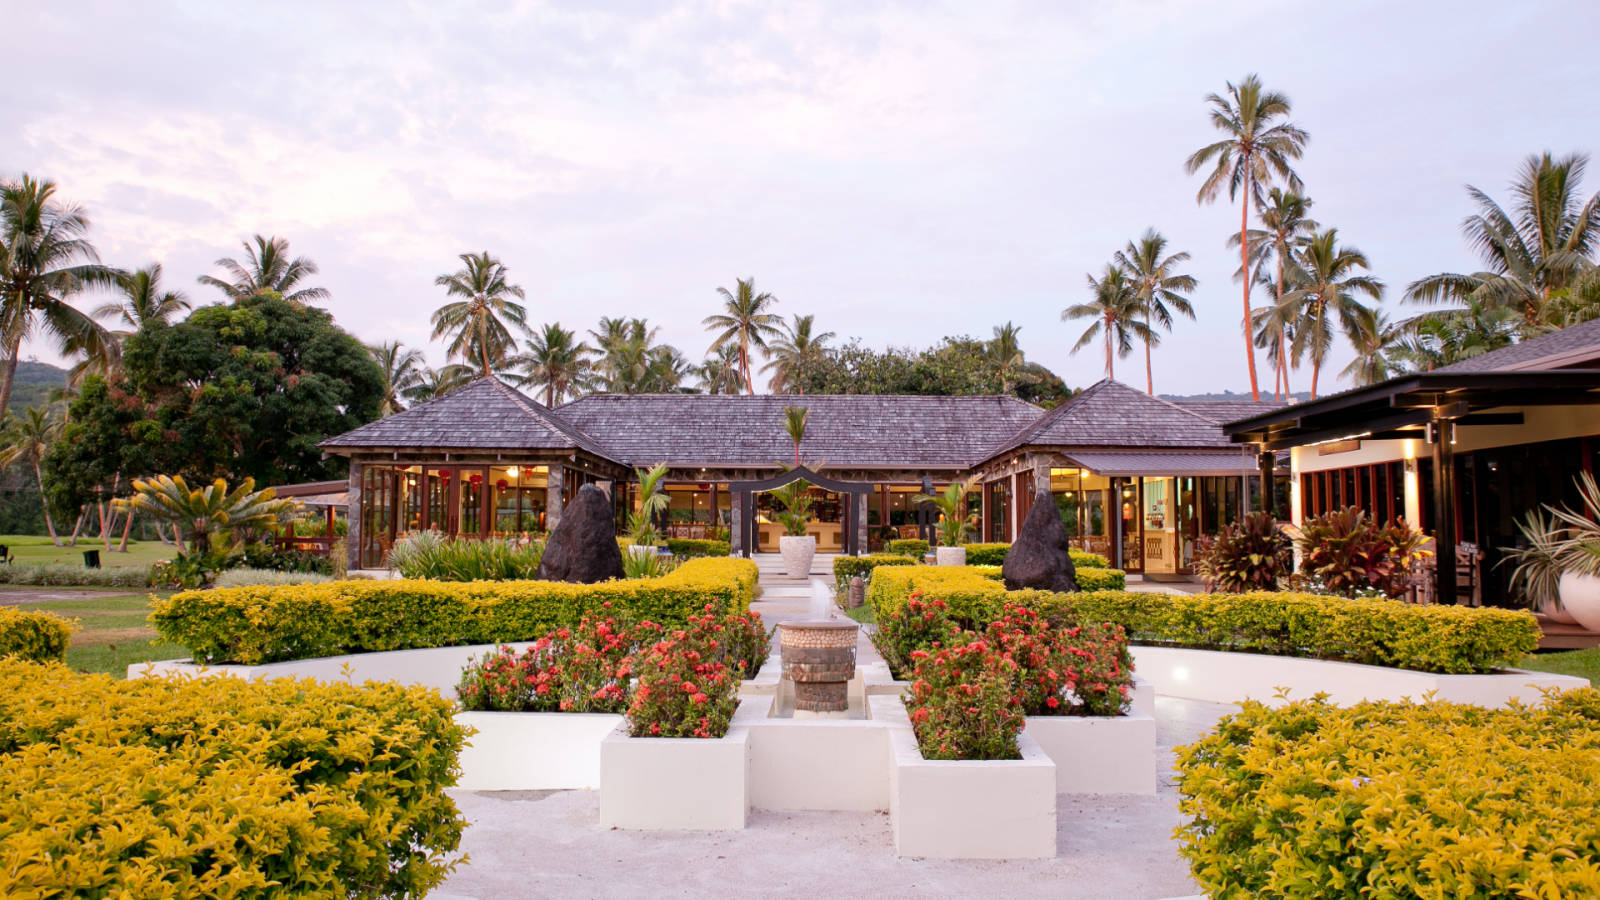 Fiji Extravaganza - All Inclusive 5 Nights at The Naviti with Exclusives